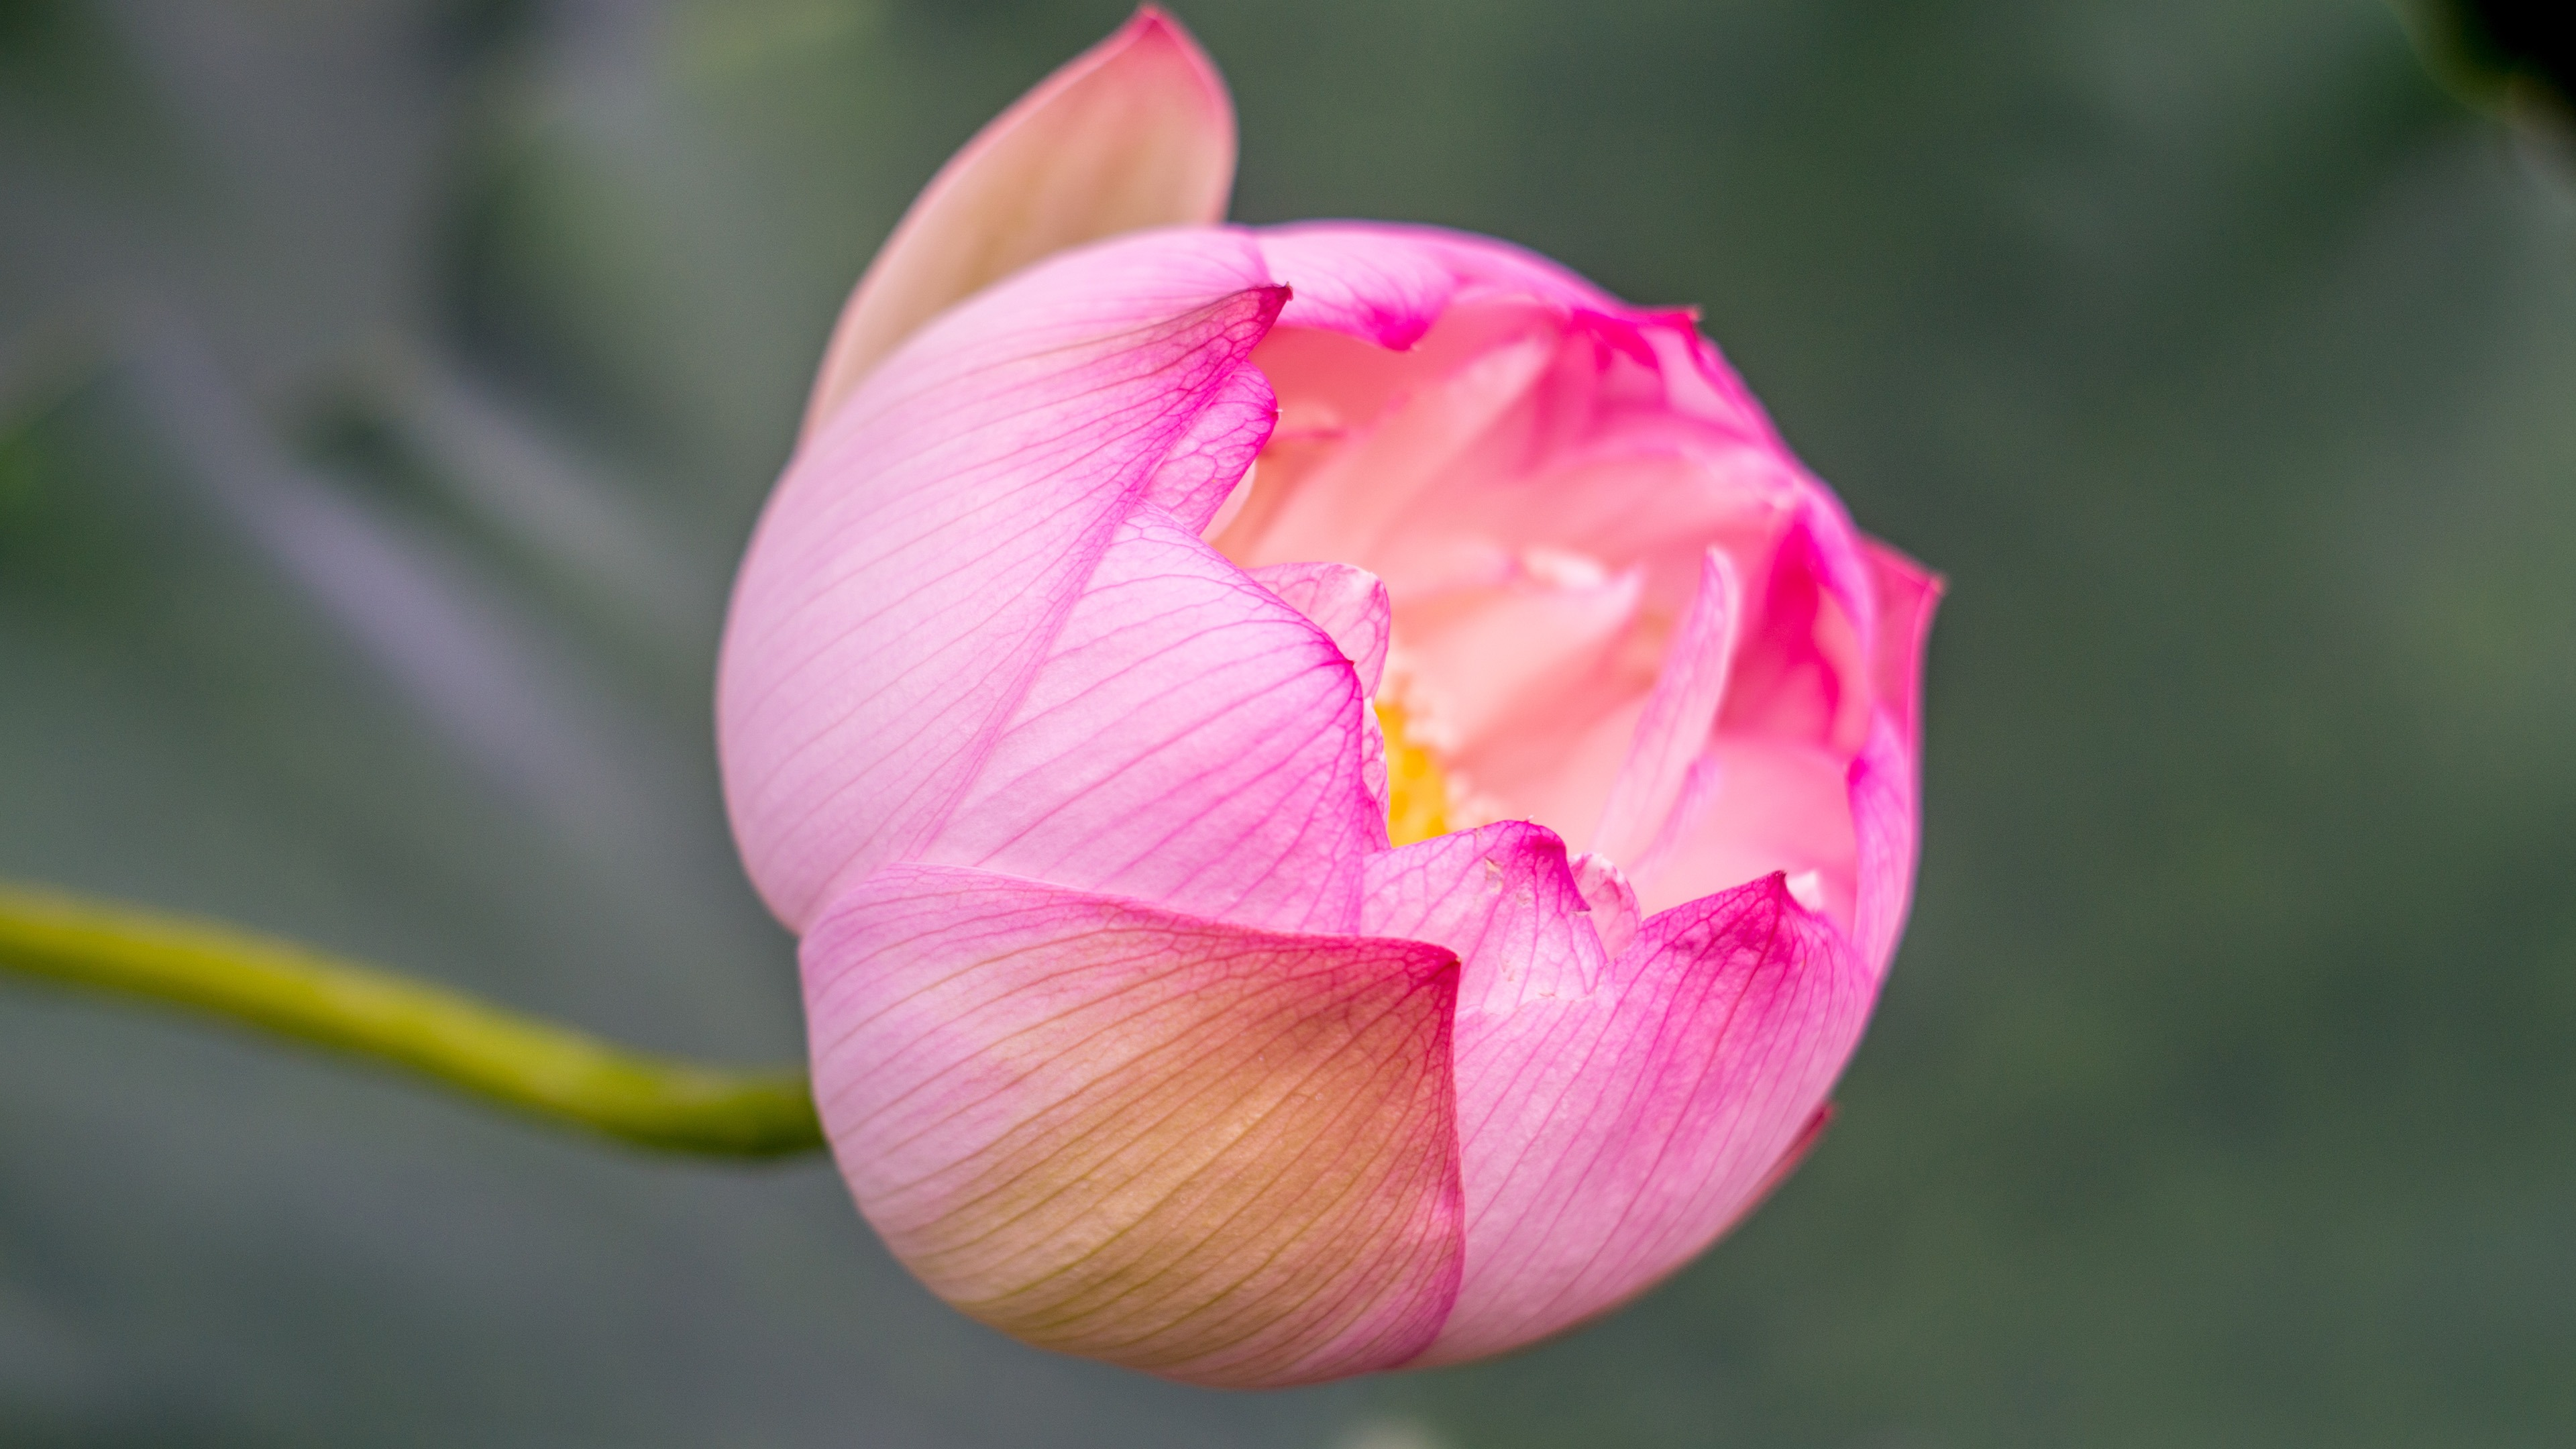 Pink Lotus Bud HD Photo Wallpaper 4K Free Download